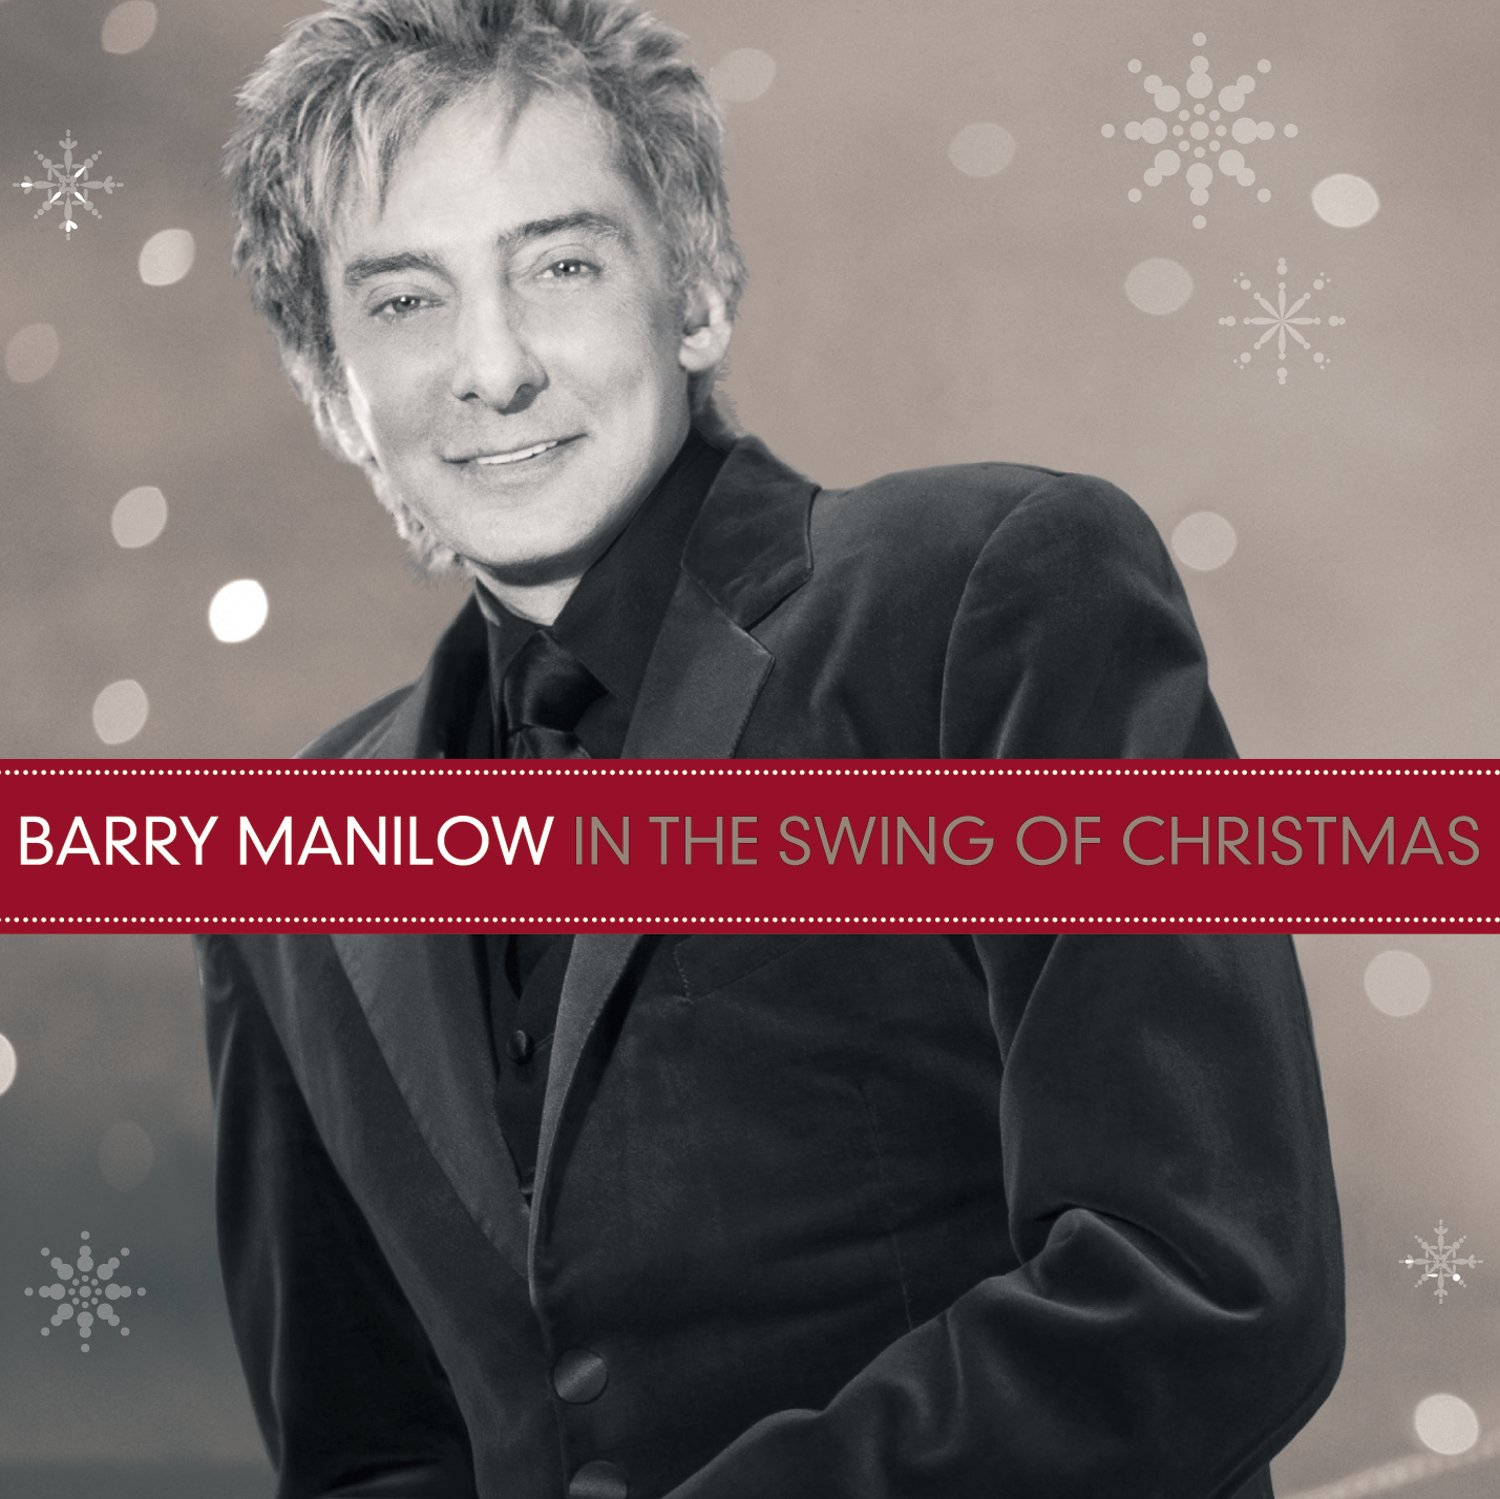 Barry Manilow - In The Swing Of Christmas - Amazon.com Music